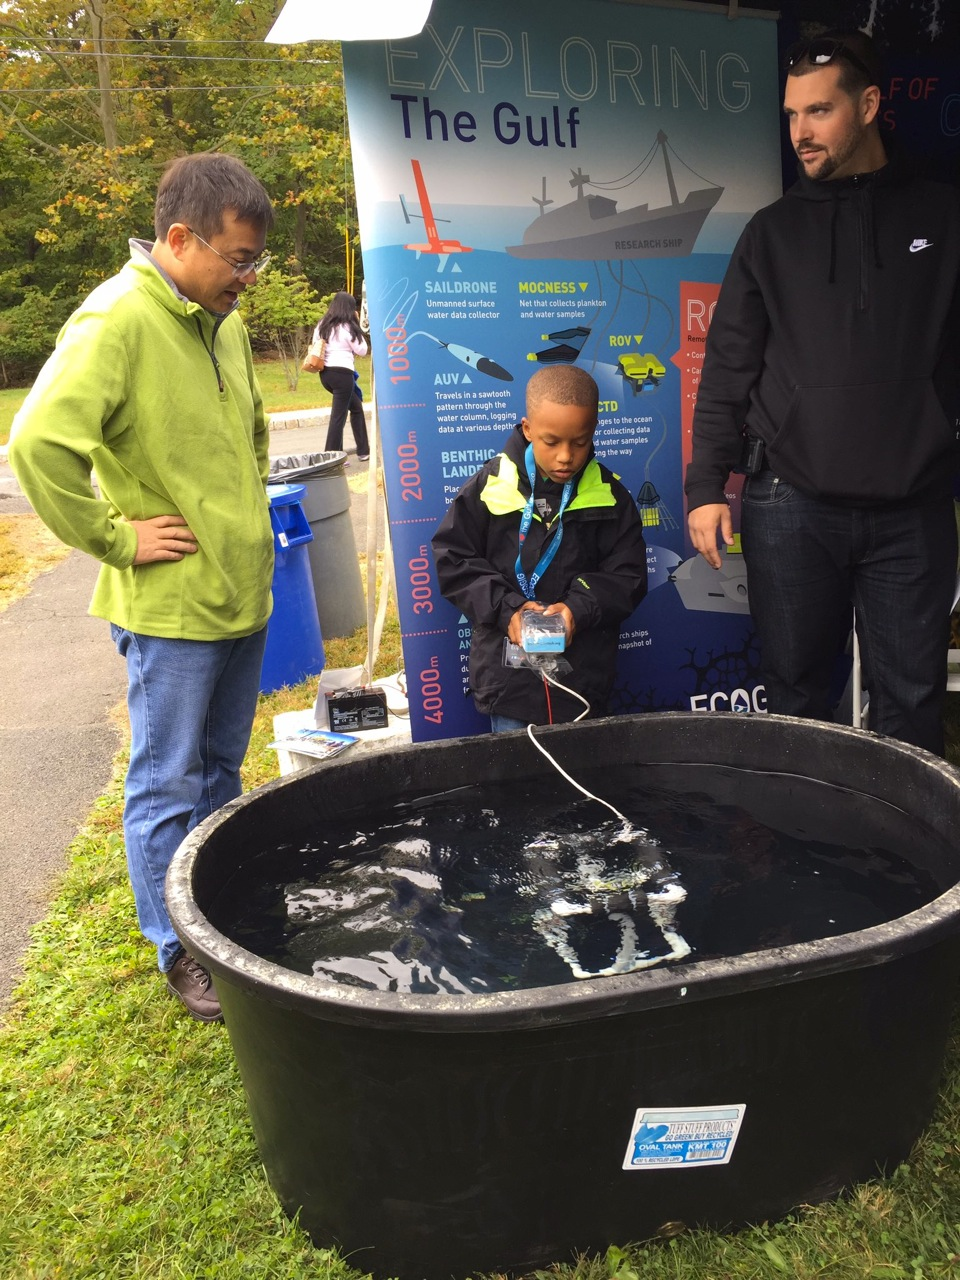 <div style='color:#000000;'><br /><br /><h2>2016 Lamont-Doherty Open House. Dr. Beizhan Yan talking with a couple of visitors to the Ocean Discovery Zone at Lamont-Doherty Earth Observatory's 2016 annual open house</h2>Photo courtesy of Kyle Frischkorn.</div>